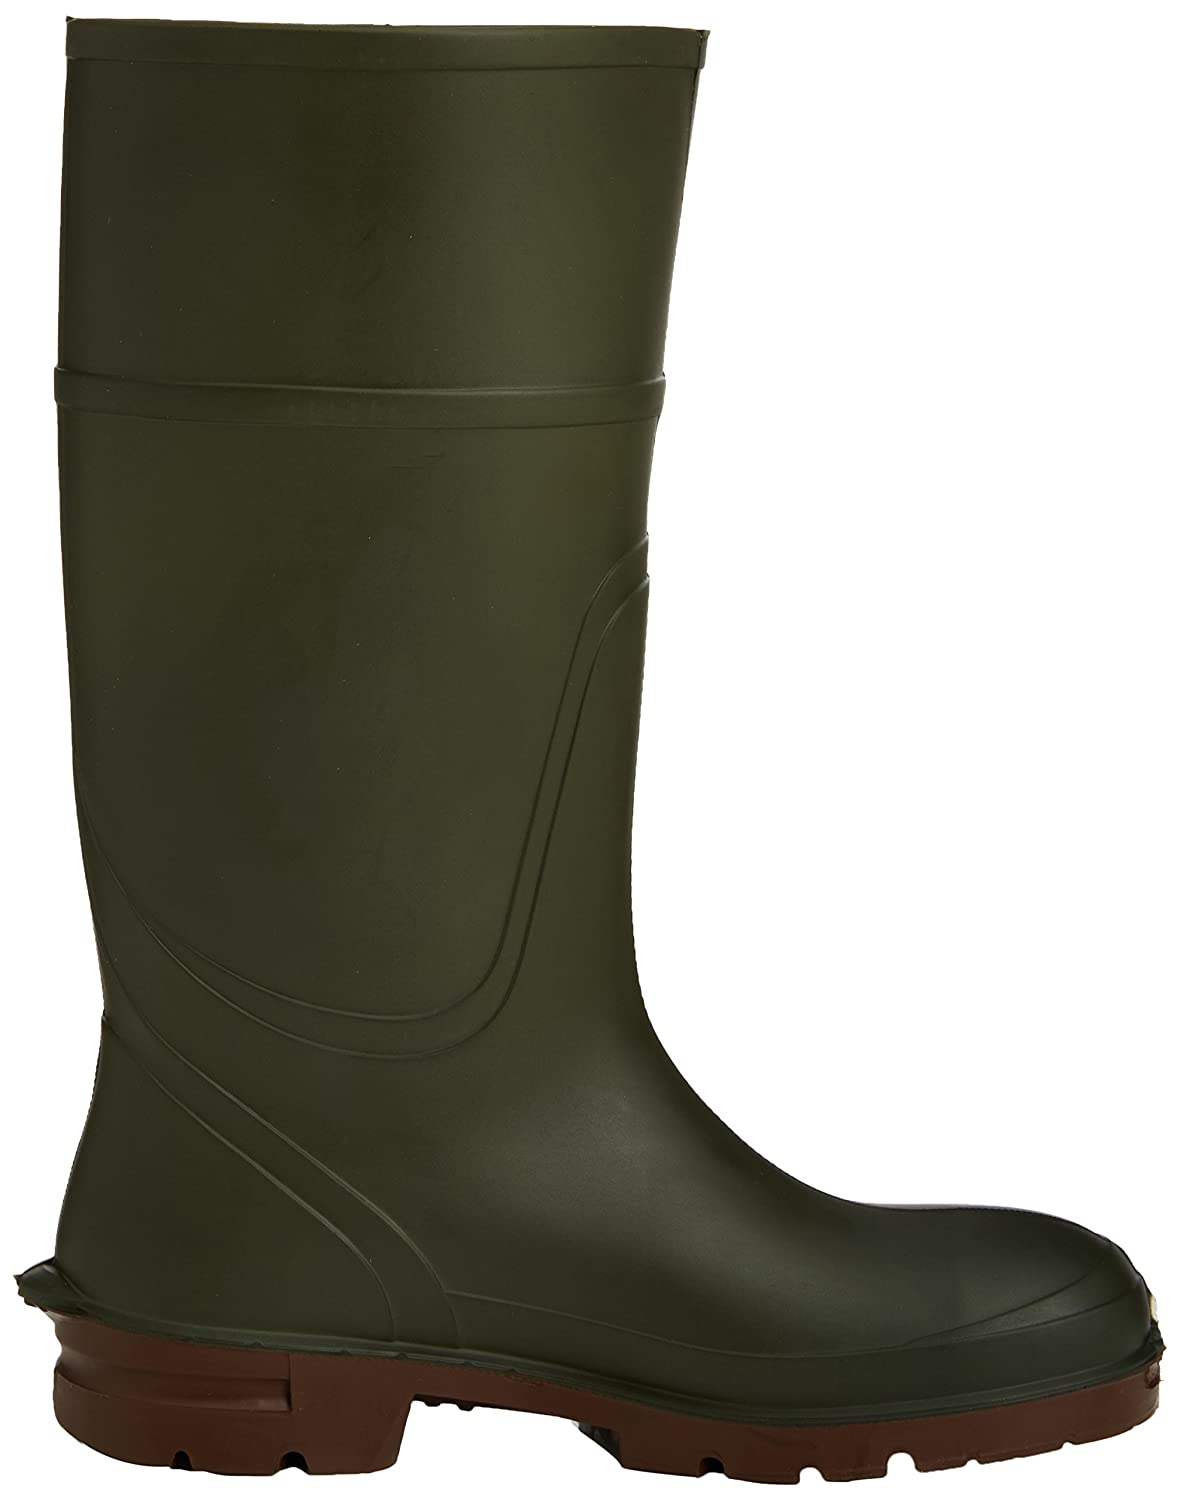 42 EU Regular Dickies Mens Landmaster Wellington Boots FW91105 Green 8 UK